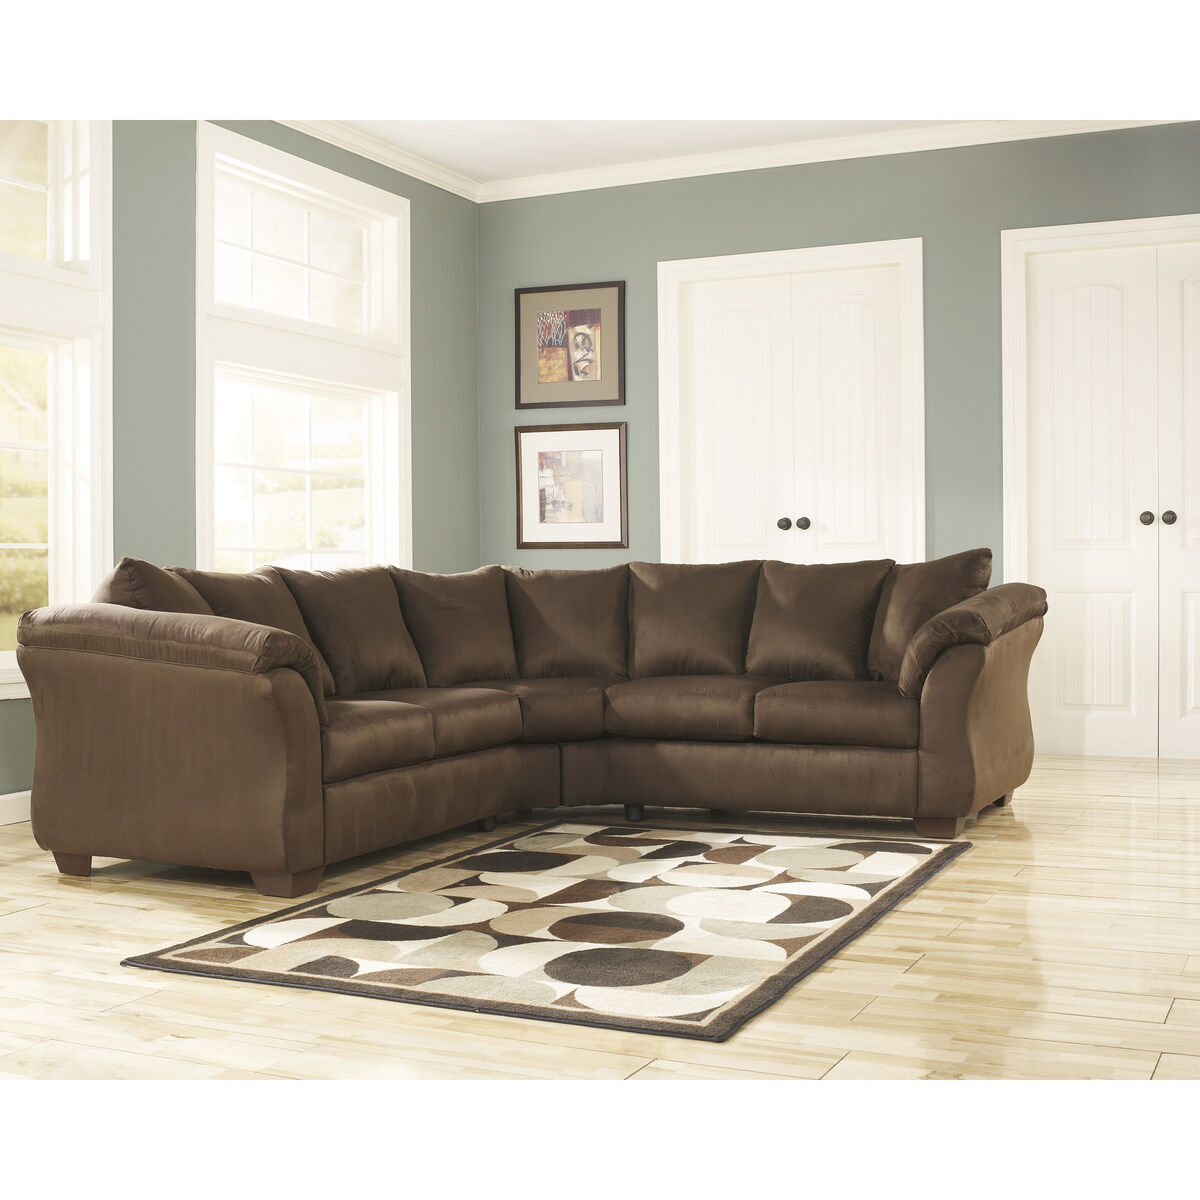 Signature Design By Ashley Darcy Sectional In Microfiber